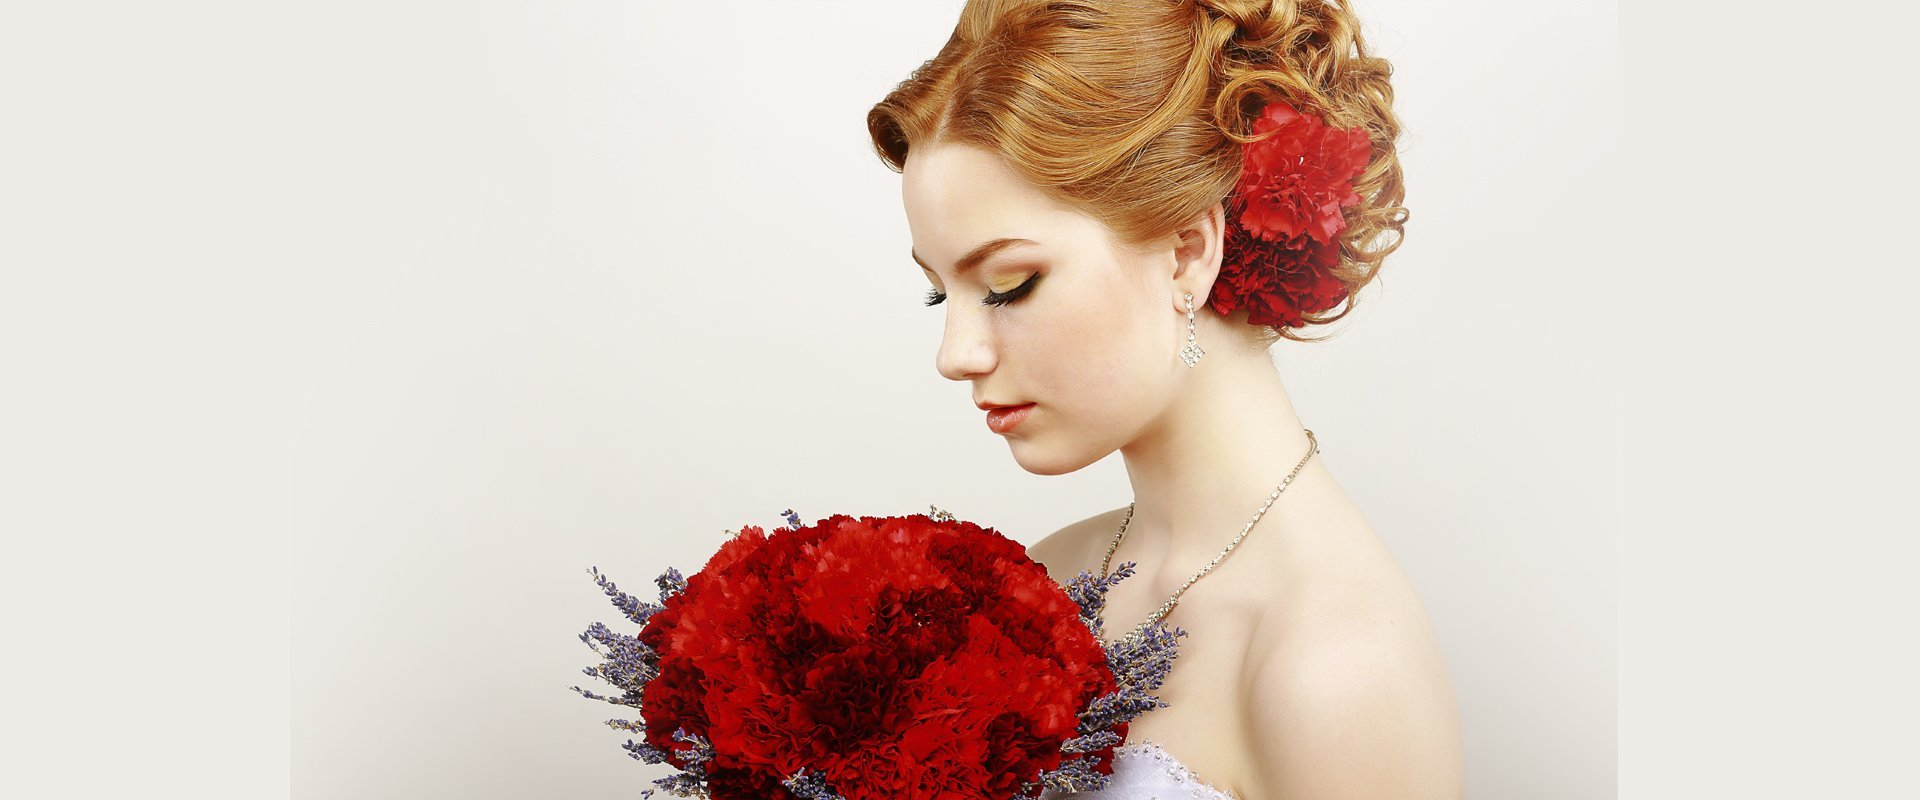 girl with red bouquet and hair accessories